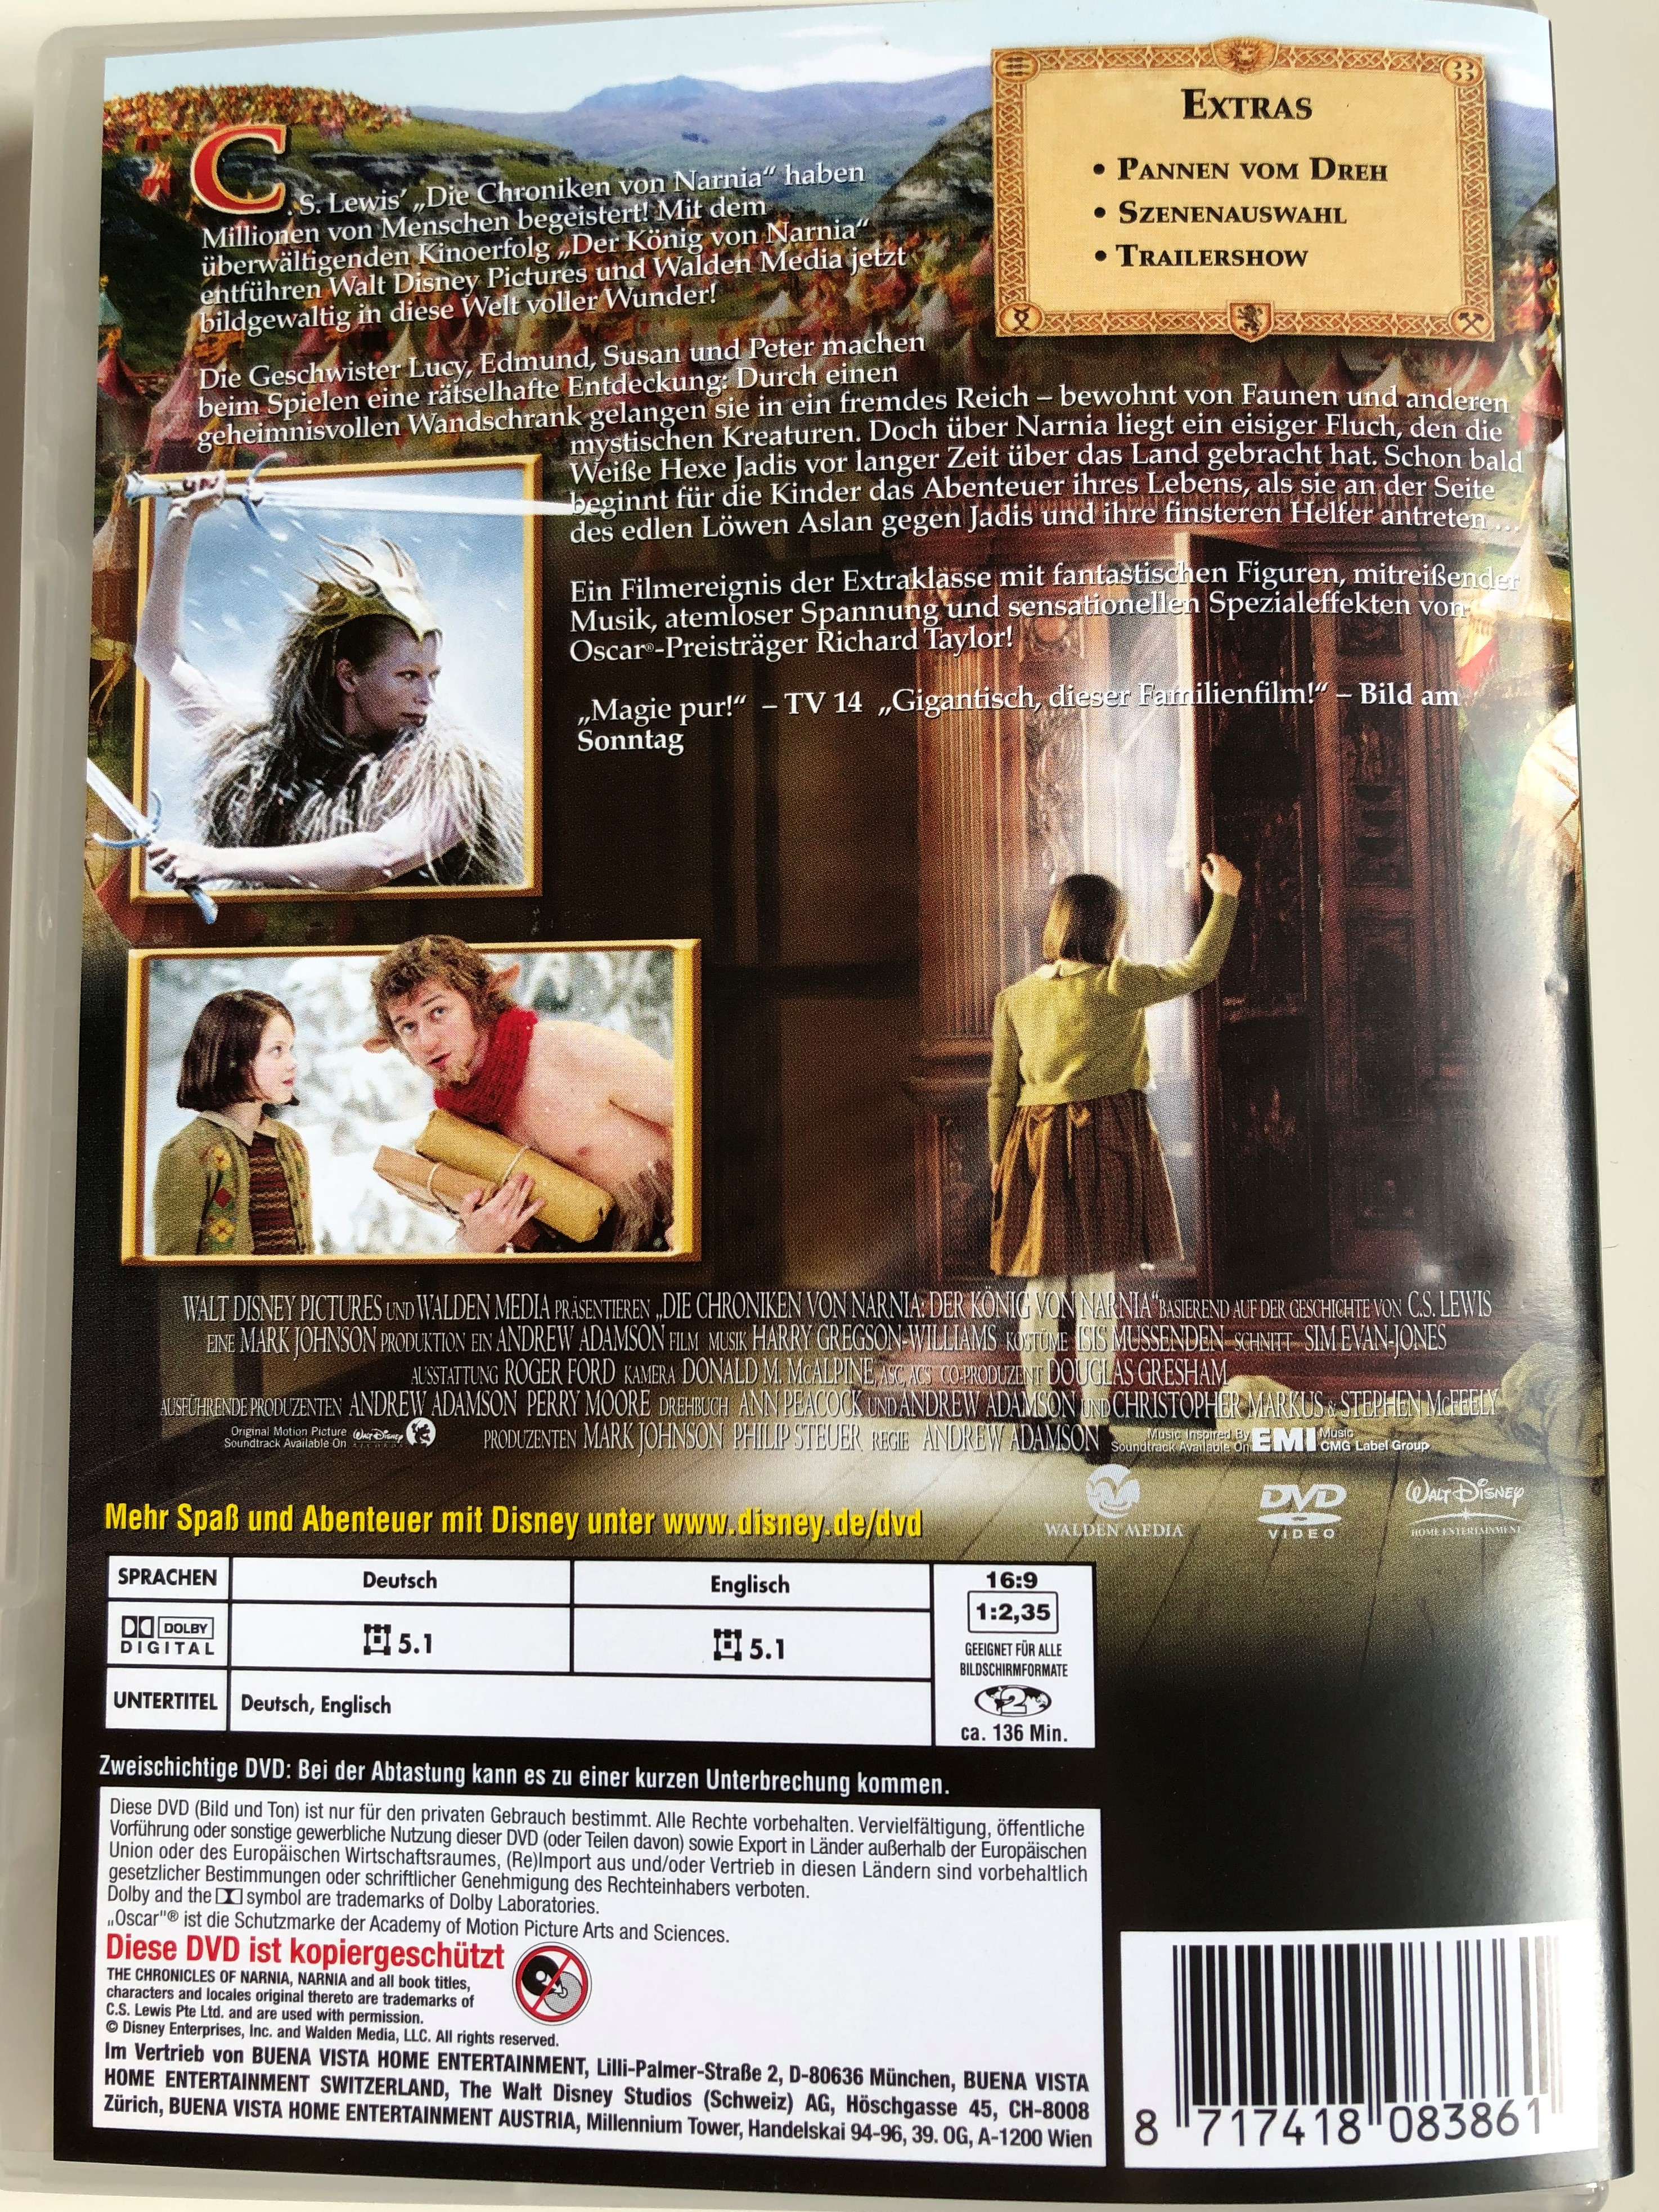 the-chronicles-of-narnia-the-lion-the-witch-and-the-wardrobe-dvd-2005-die-chroniken-von-narnia-der-k-nig-von-narnia-2.jpg